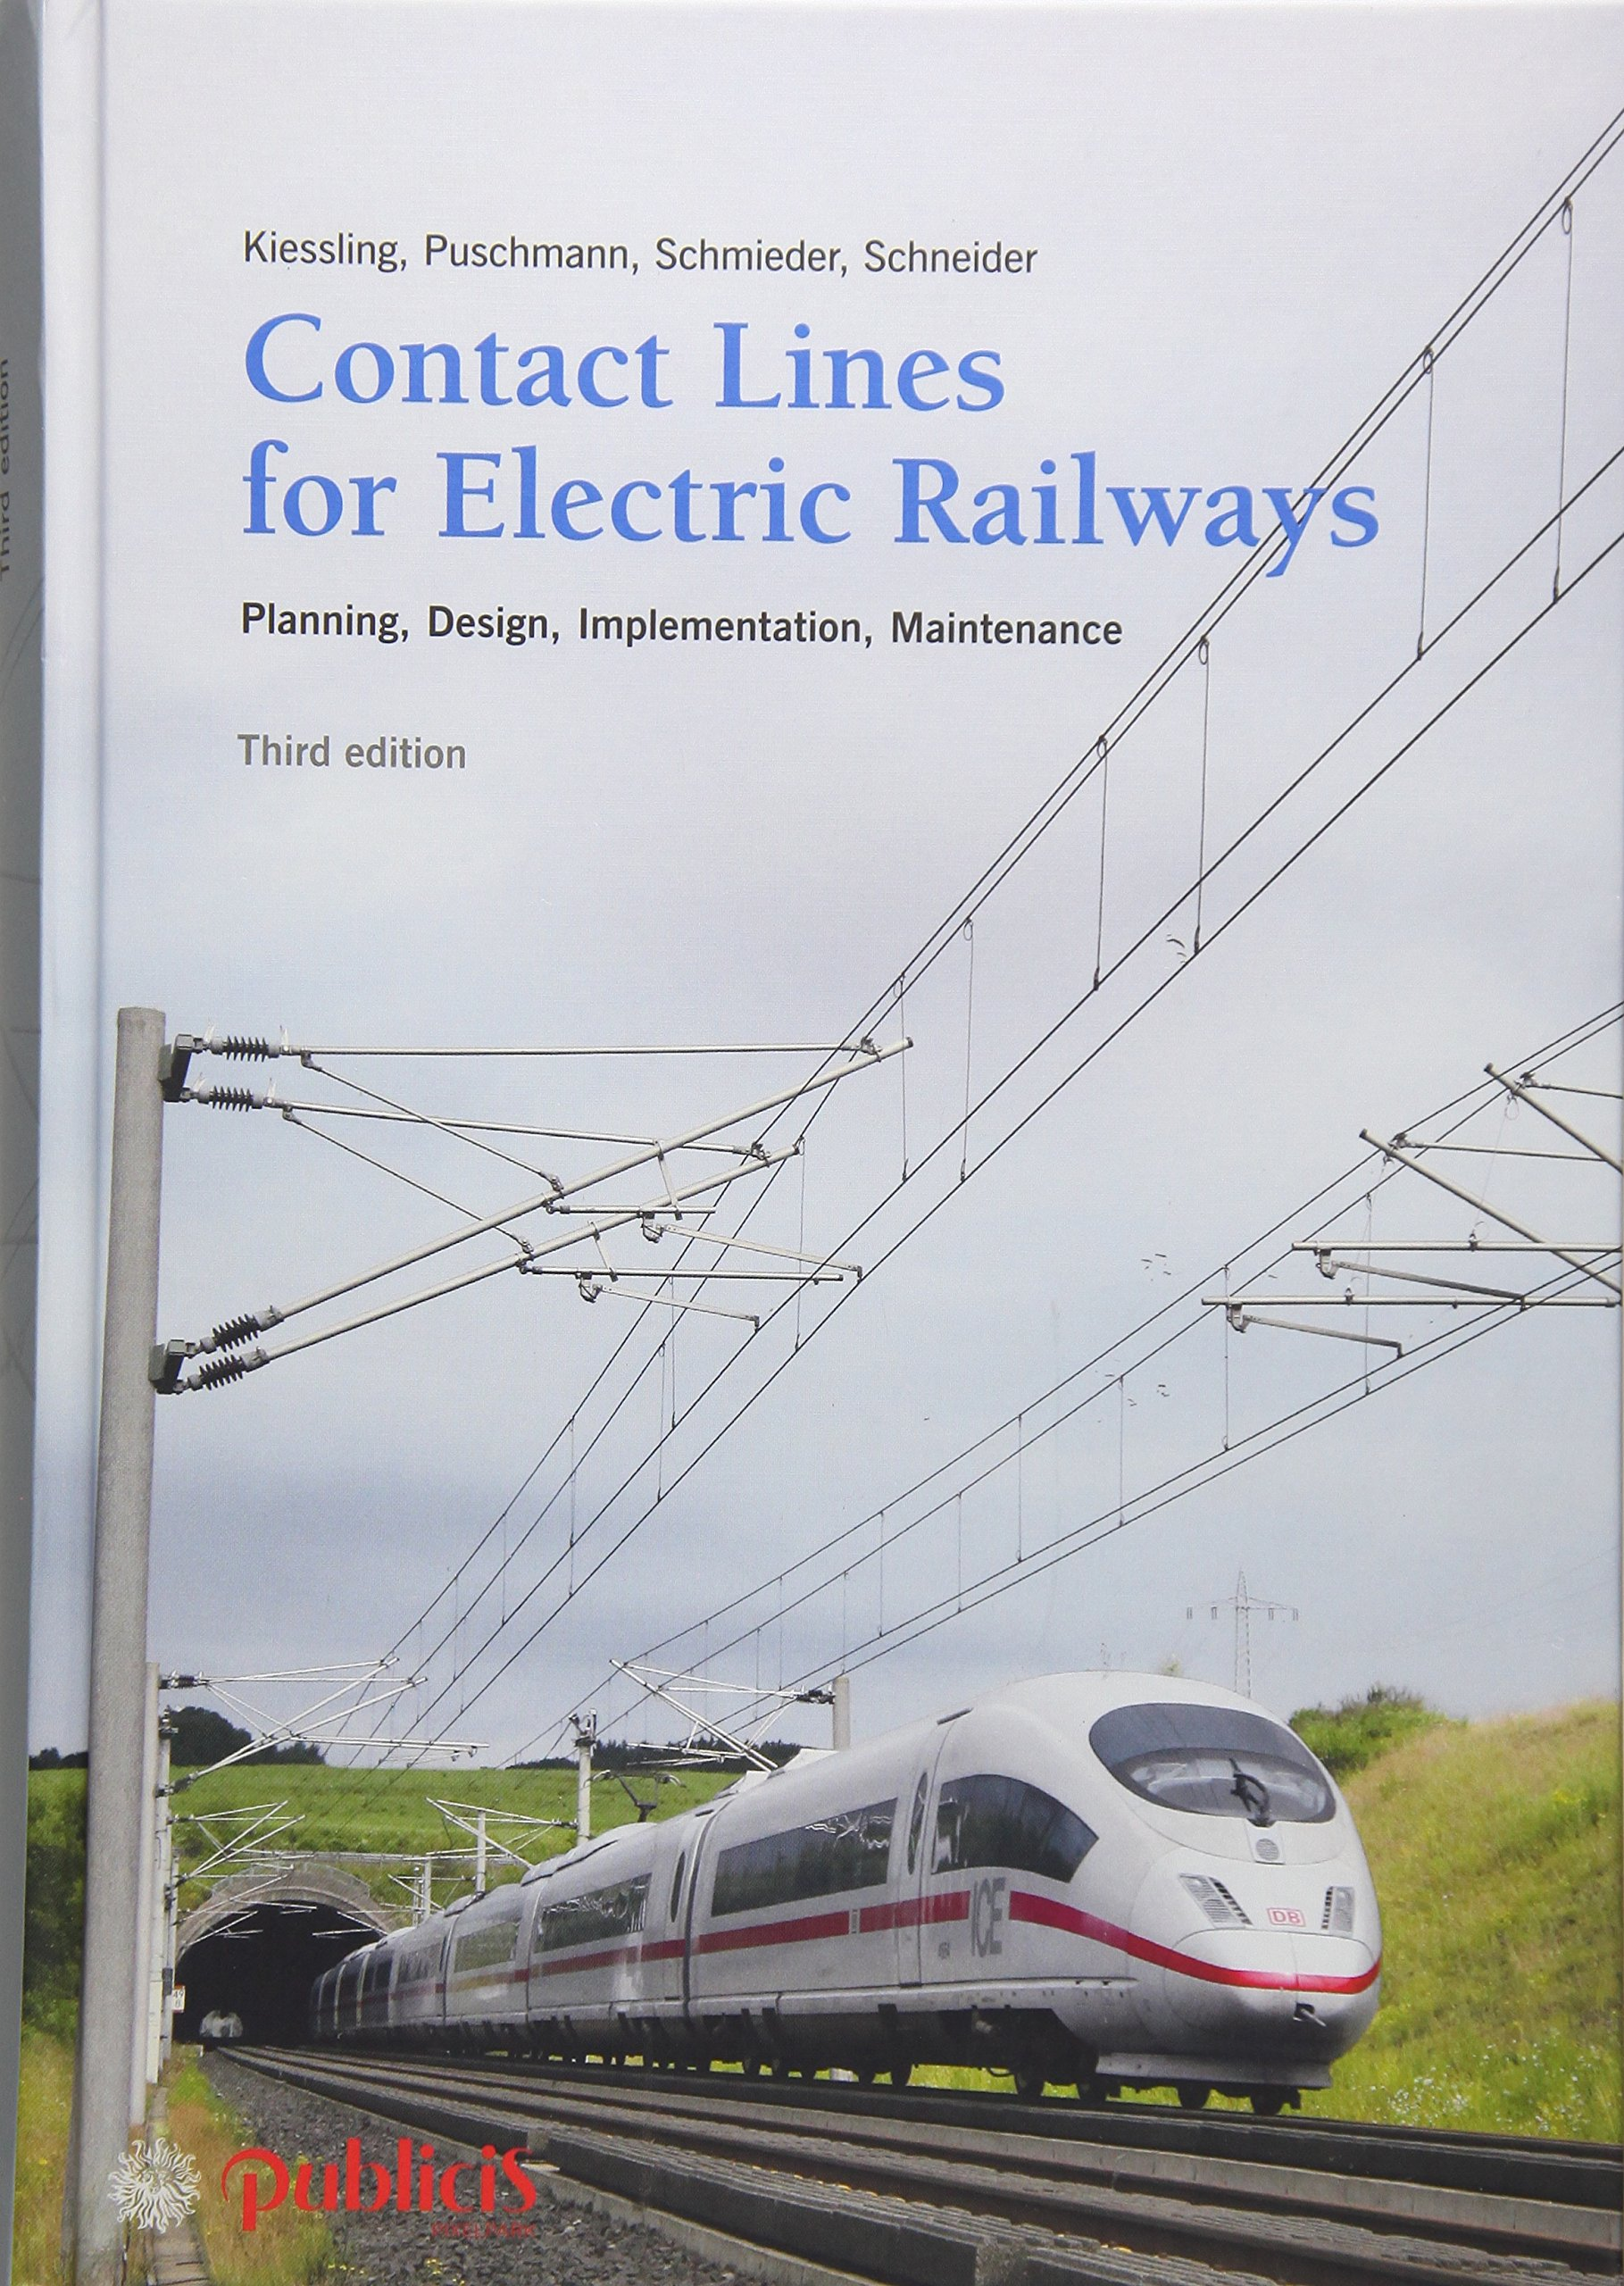 Contact Lines for Electrical Railways: Planning - Design